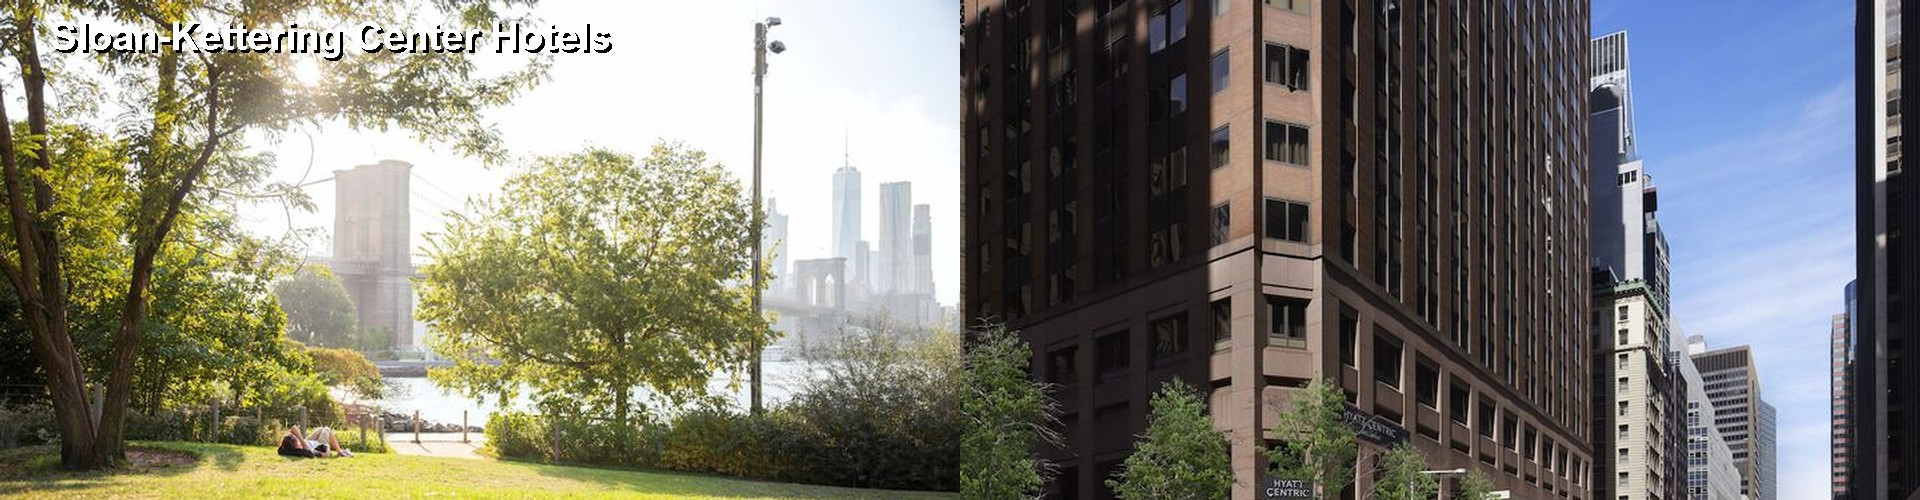 5 Best Hotels near Sloan-Kettering Center